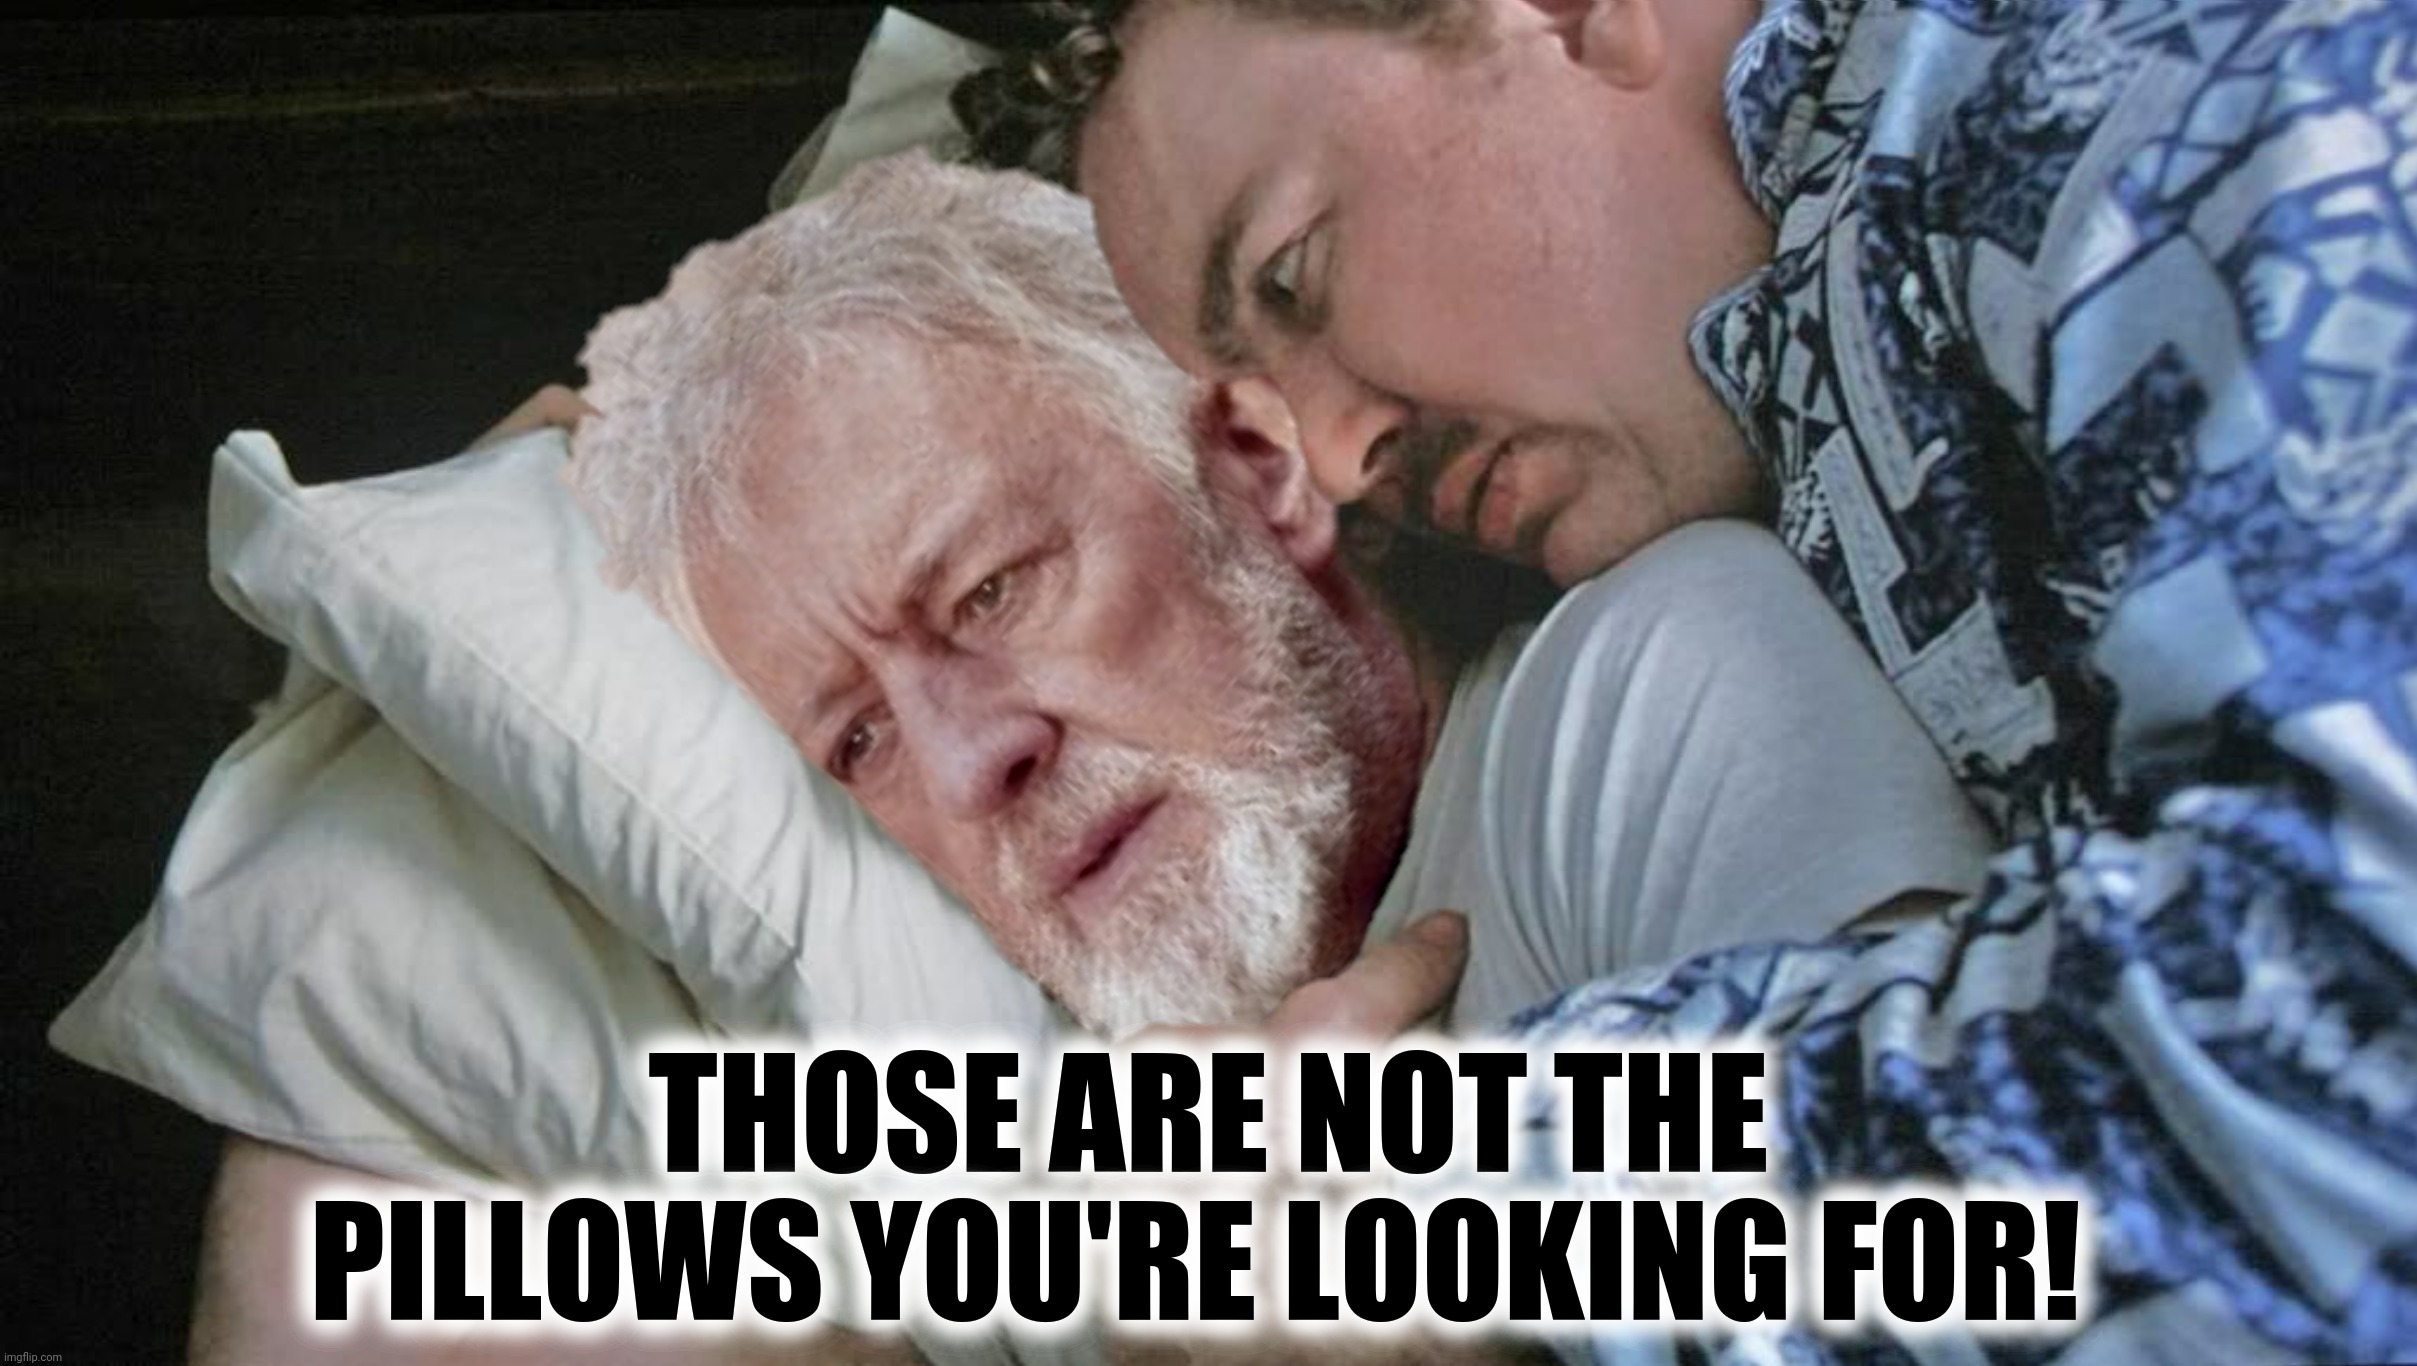 Bad Photoshop Sunday presents:  Now that's a meme I've not seen in a long time |  THOSE ARE NOT THE PILLOWS YOU'RE LOOKING FOR! | image tagged in bad photoshop sunday,planes trains and automobiles,obi wan kenobi,star wars | made w/ Imgflip meme maker